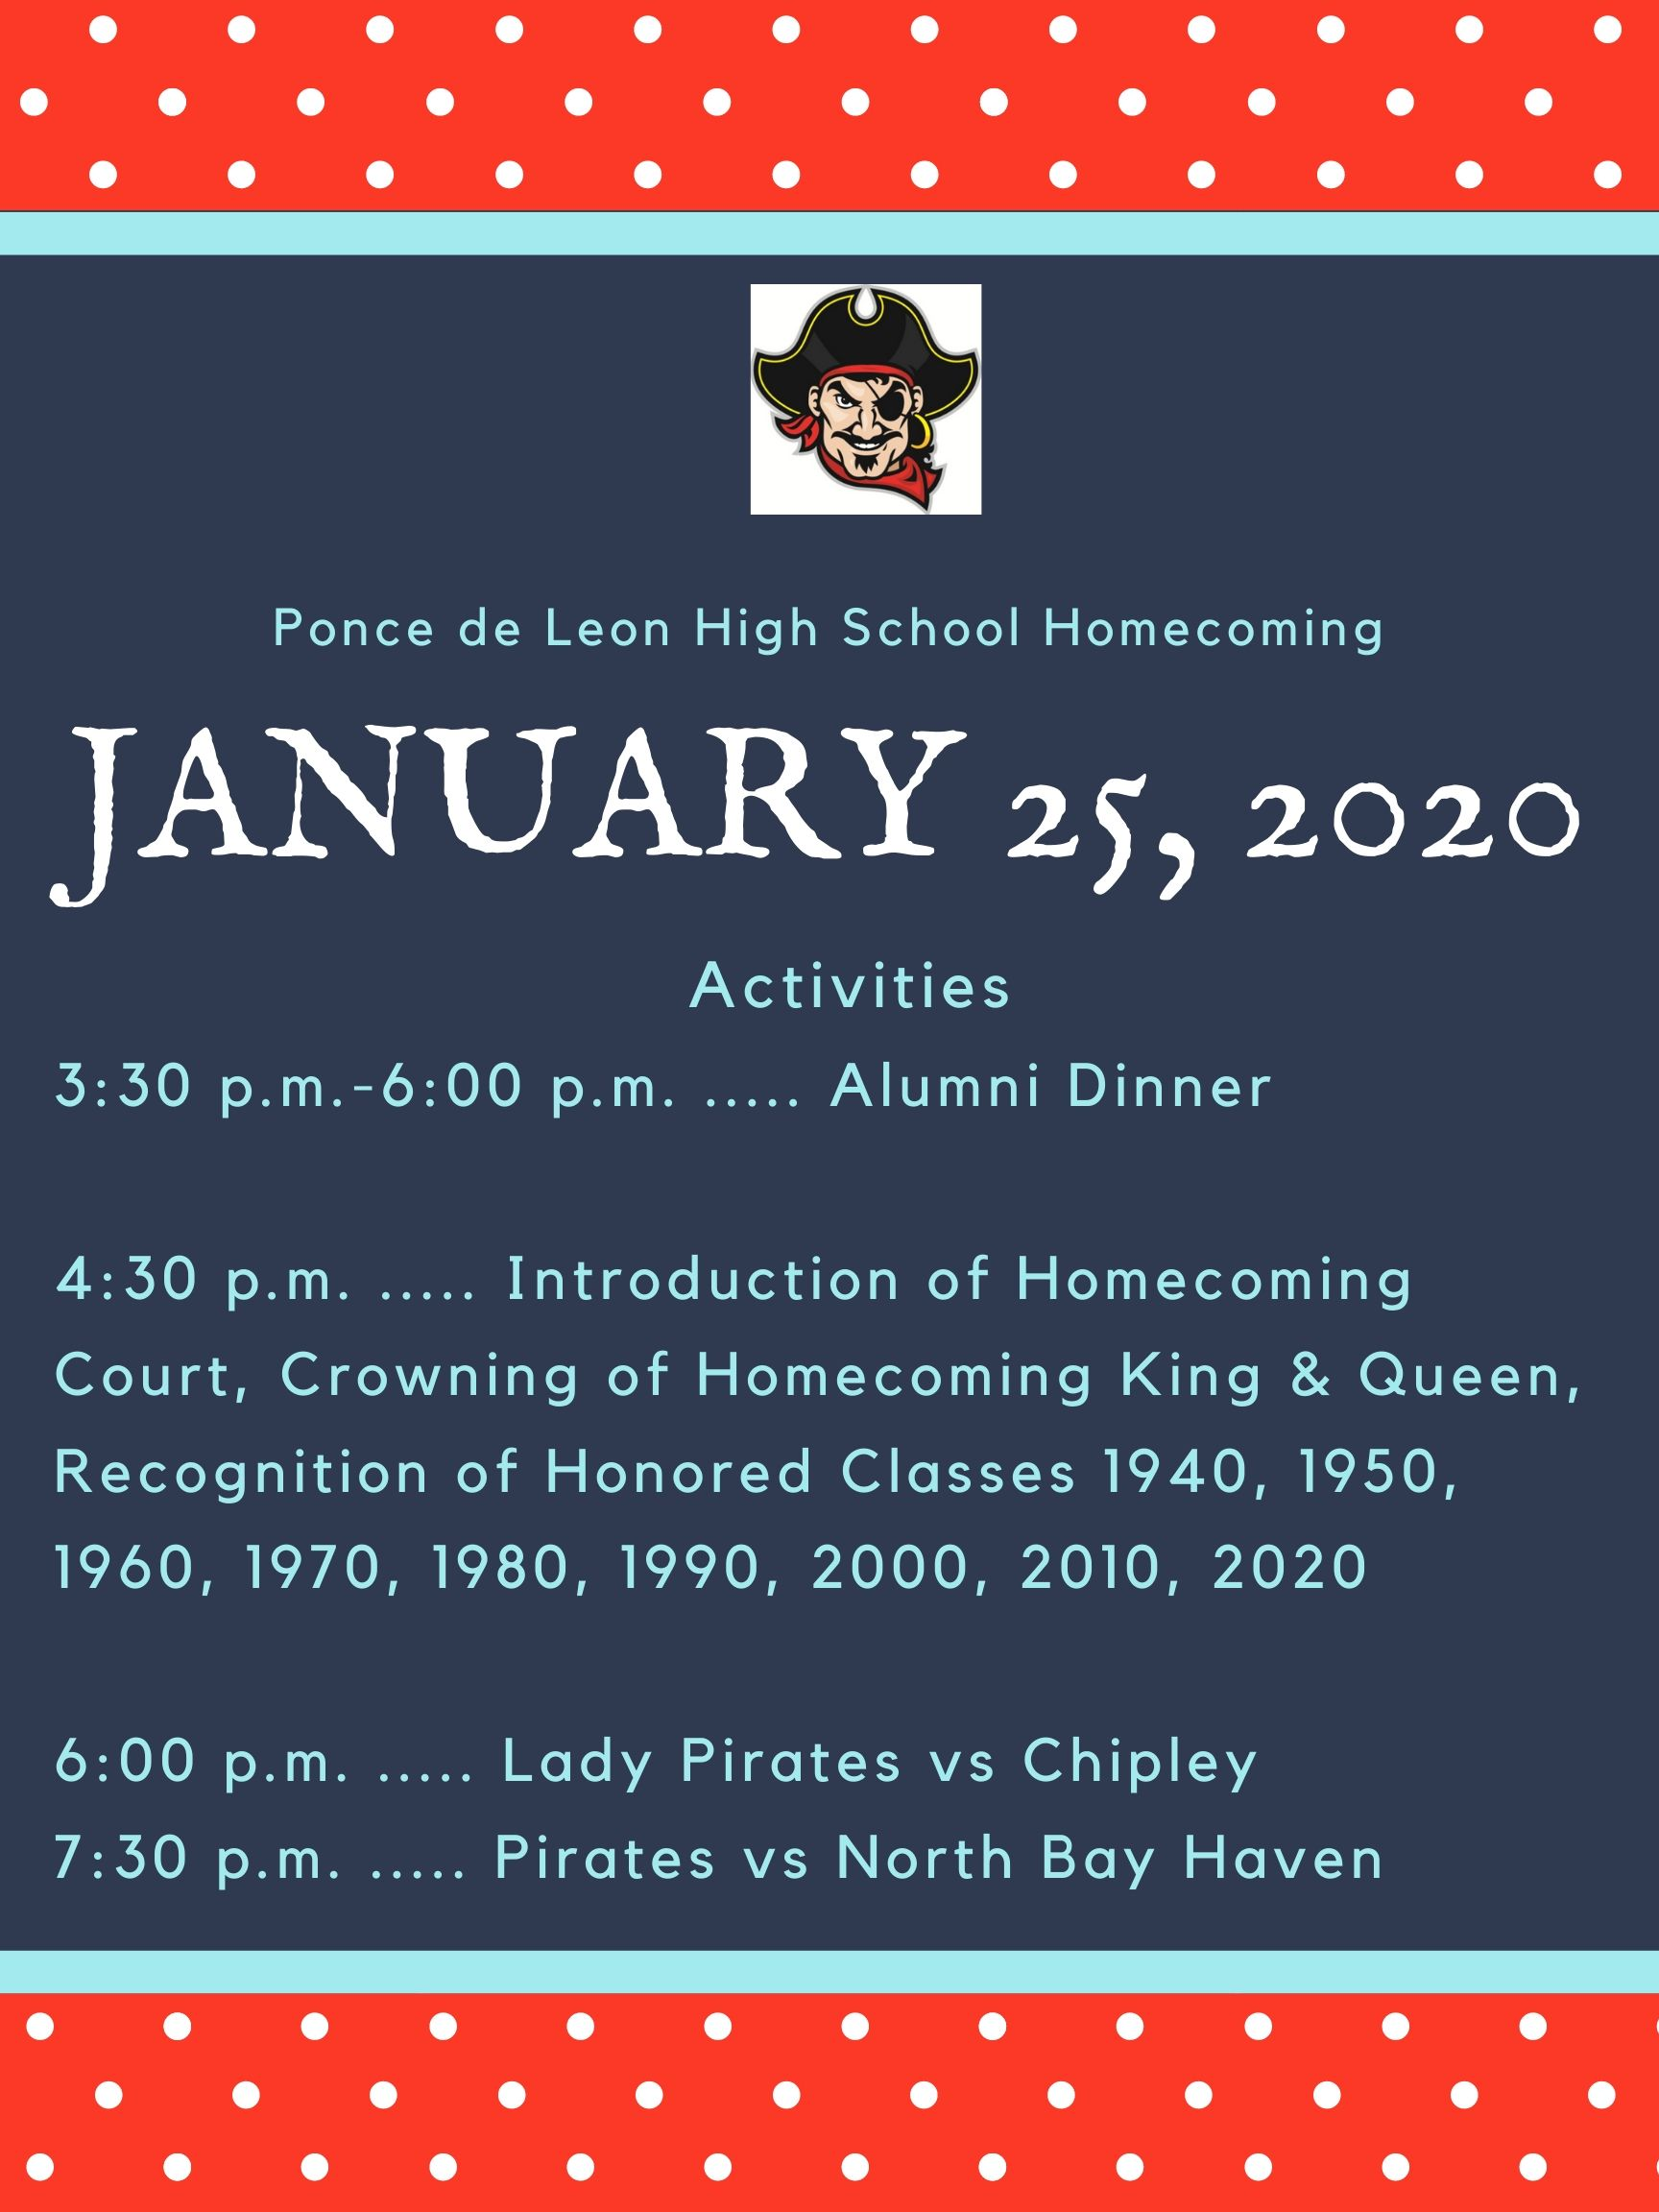 Homecoming Schedule for Saturday Activities